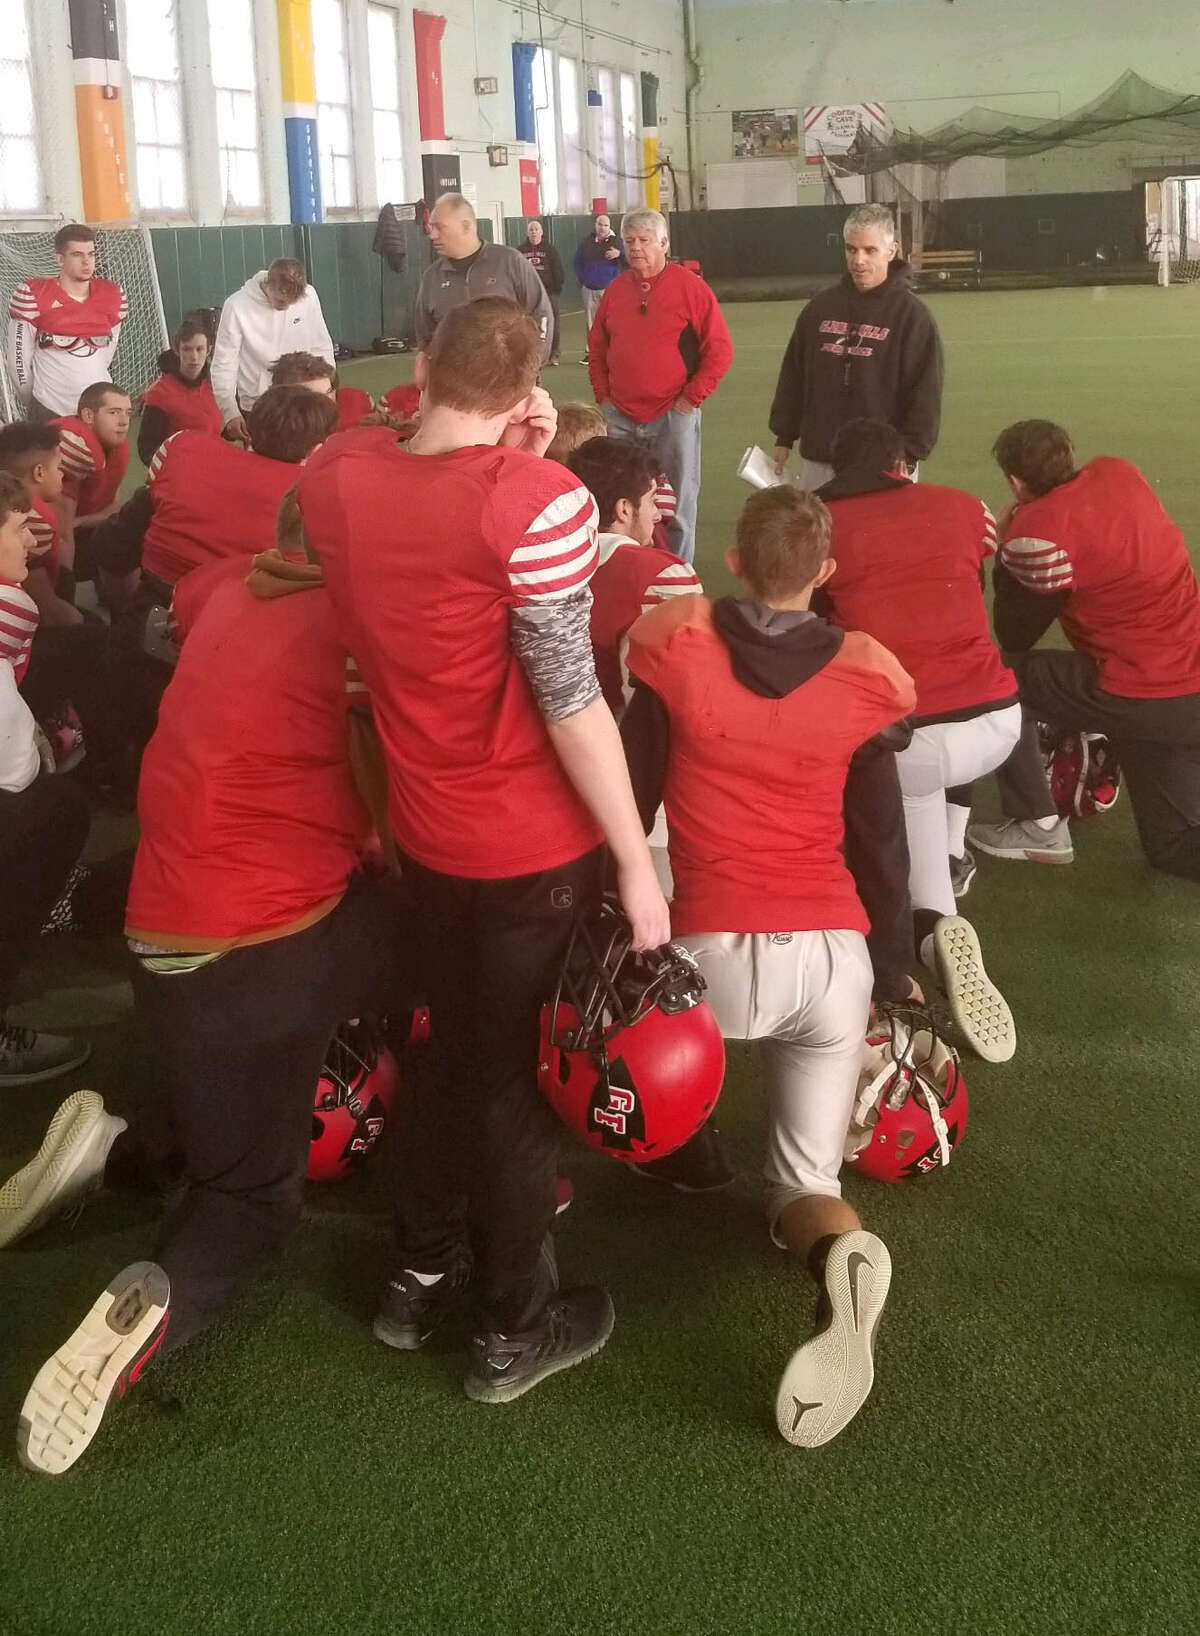 Glens Falls football coach Pat Lilac speaks to the team following their Thanksiving day practice at the Chase Sports Complex in South Glens Falls on Thursday, November 22, 2018. (James Allen / Times Union)